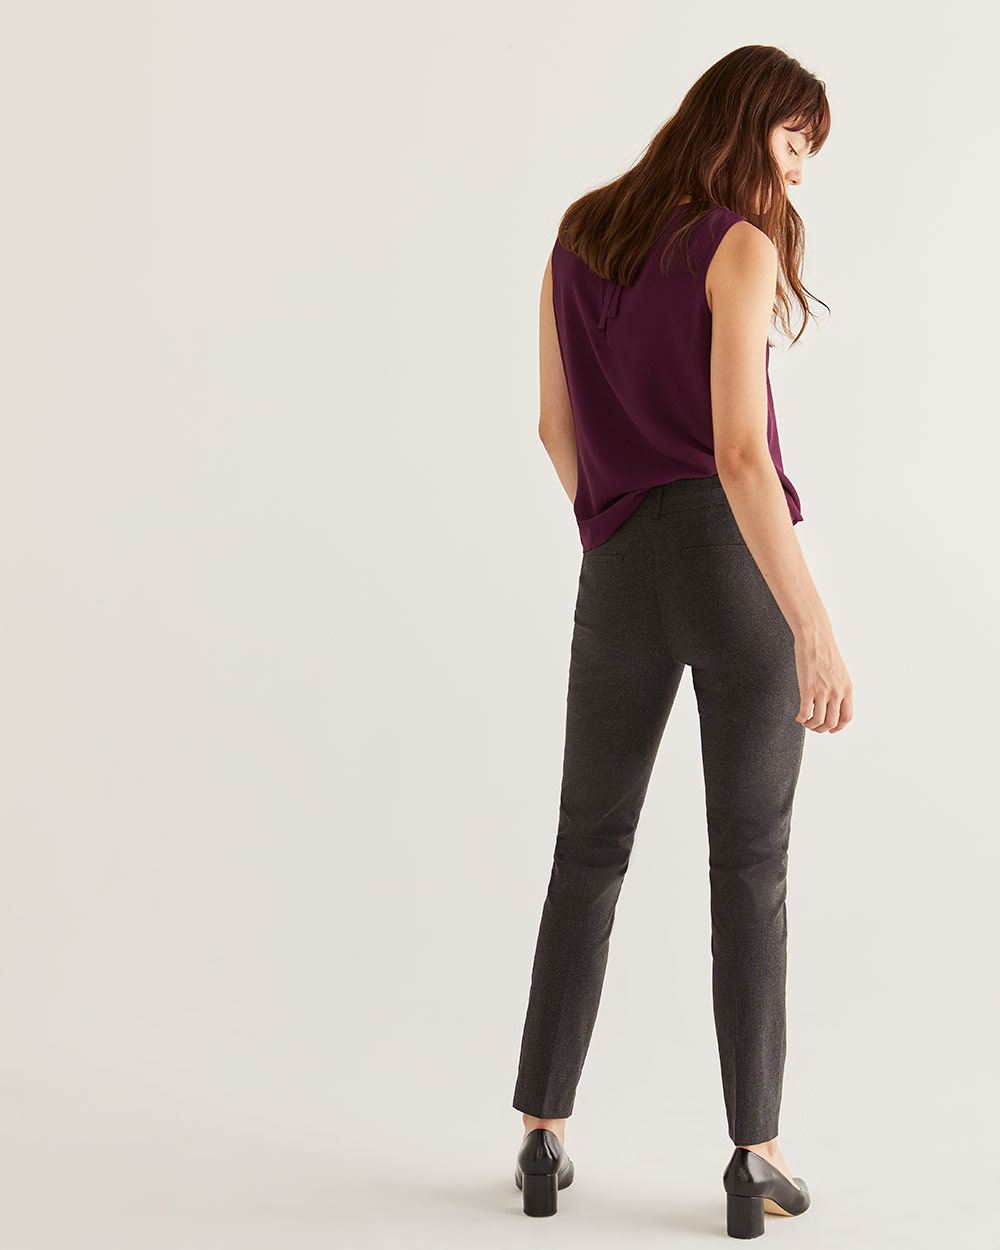 The Iconic Patterned Straight Pull On Pants - Petite